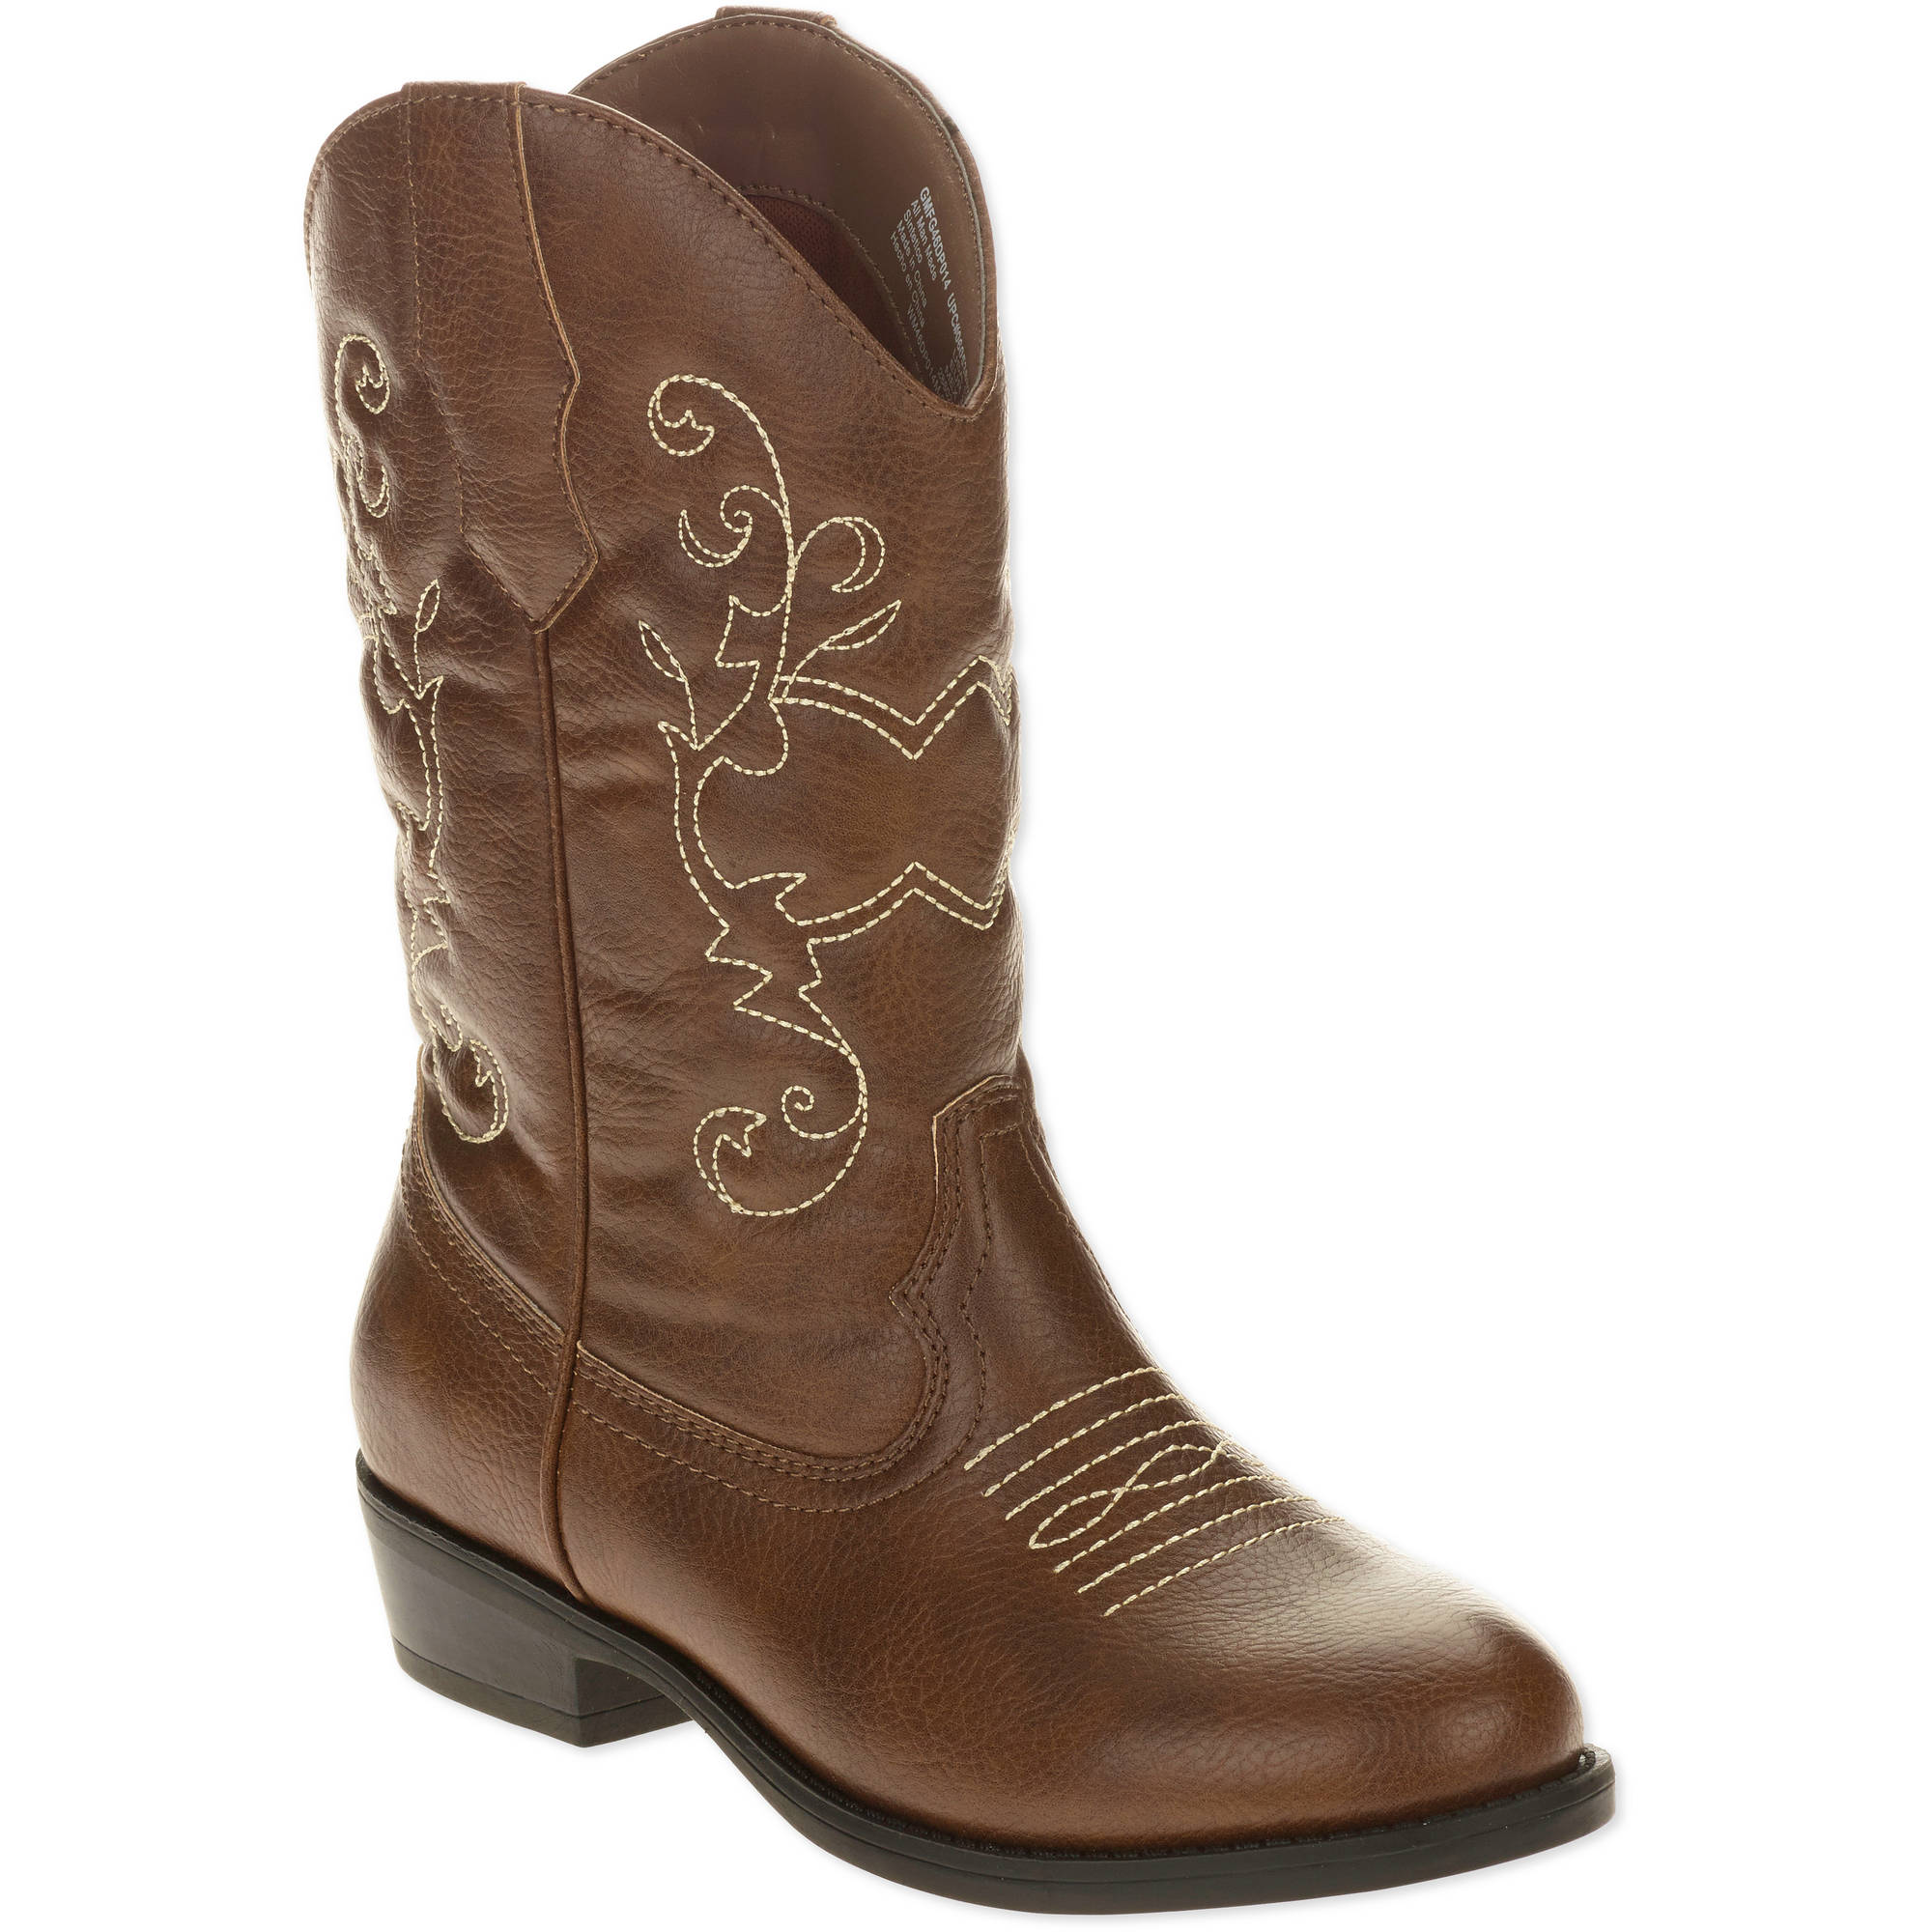 Faded Glory Girls' Cowboy Boot